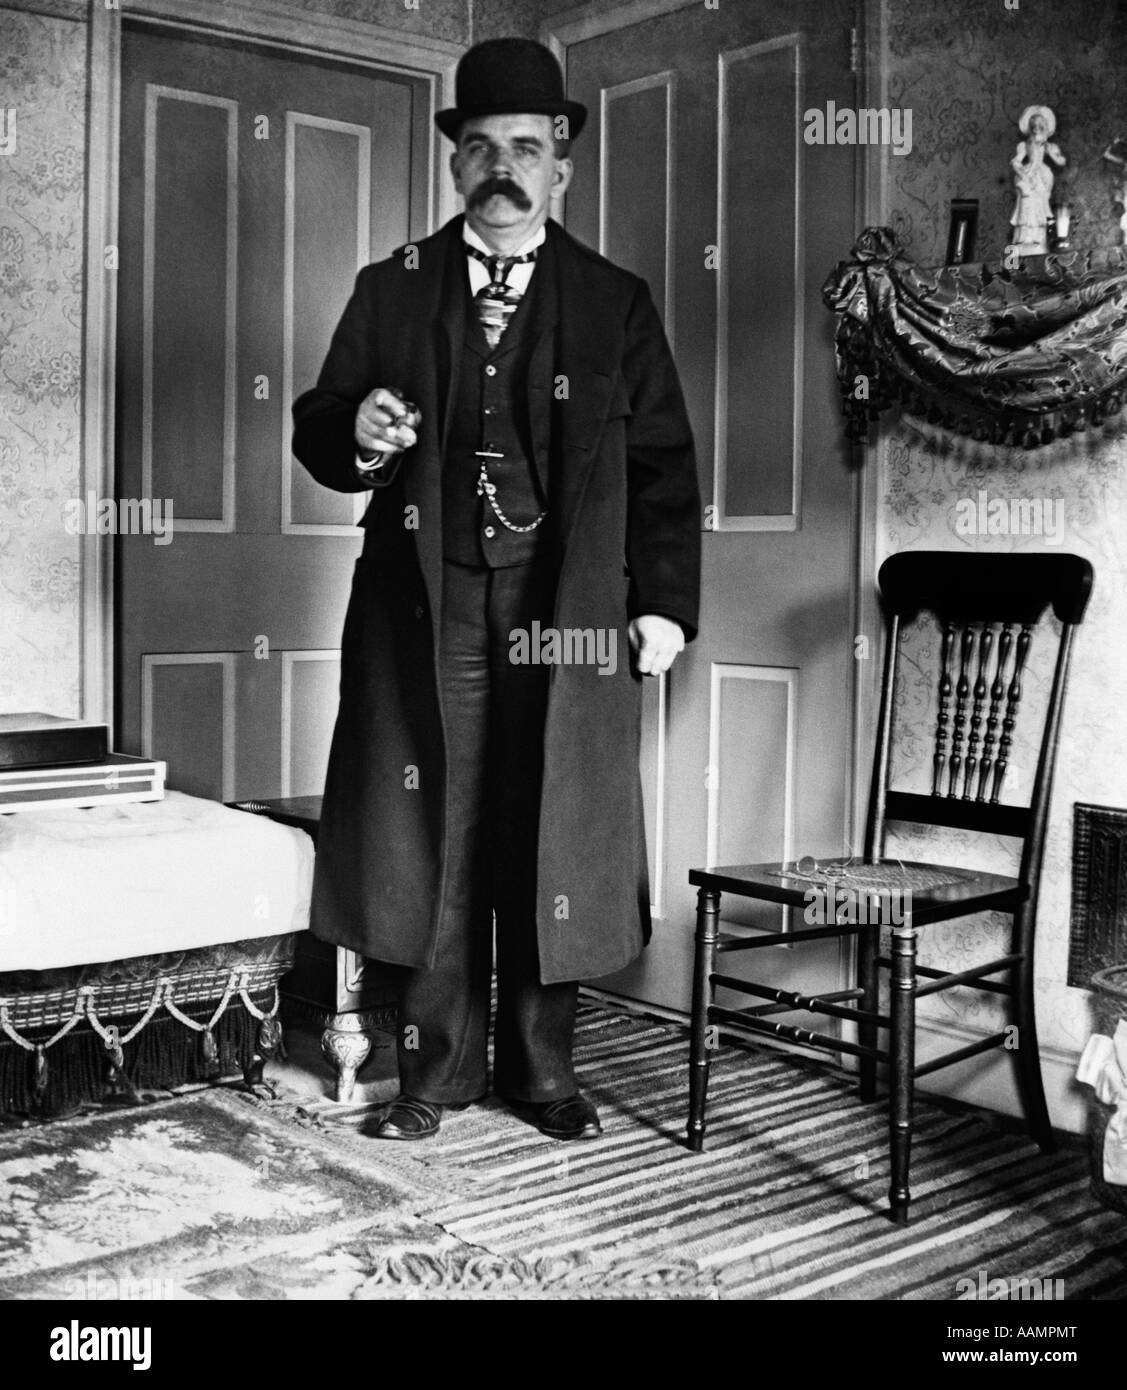 1890s 1900s TURN OF THE CENTURY MAN WITH BUSHY MUSTACHE WEARING BOWLER THREE-PIECE SUIT WITH POCKET WATCH & - Stock Image